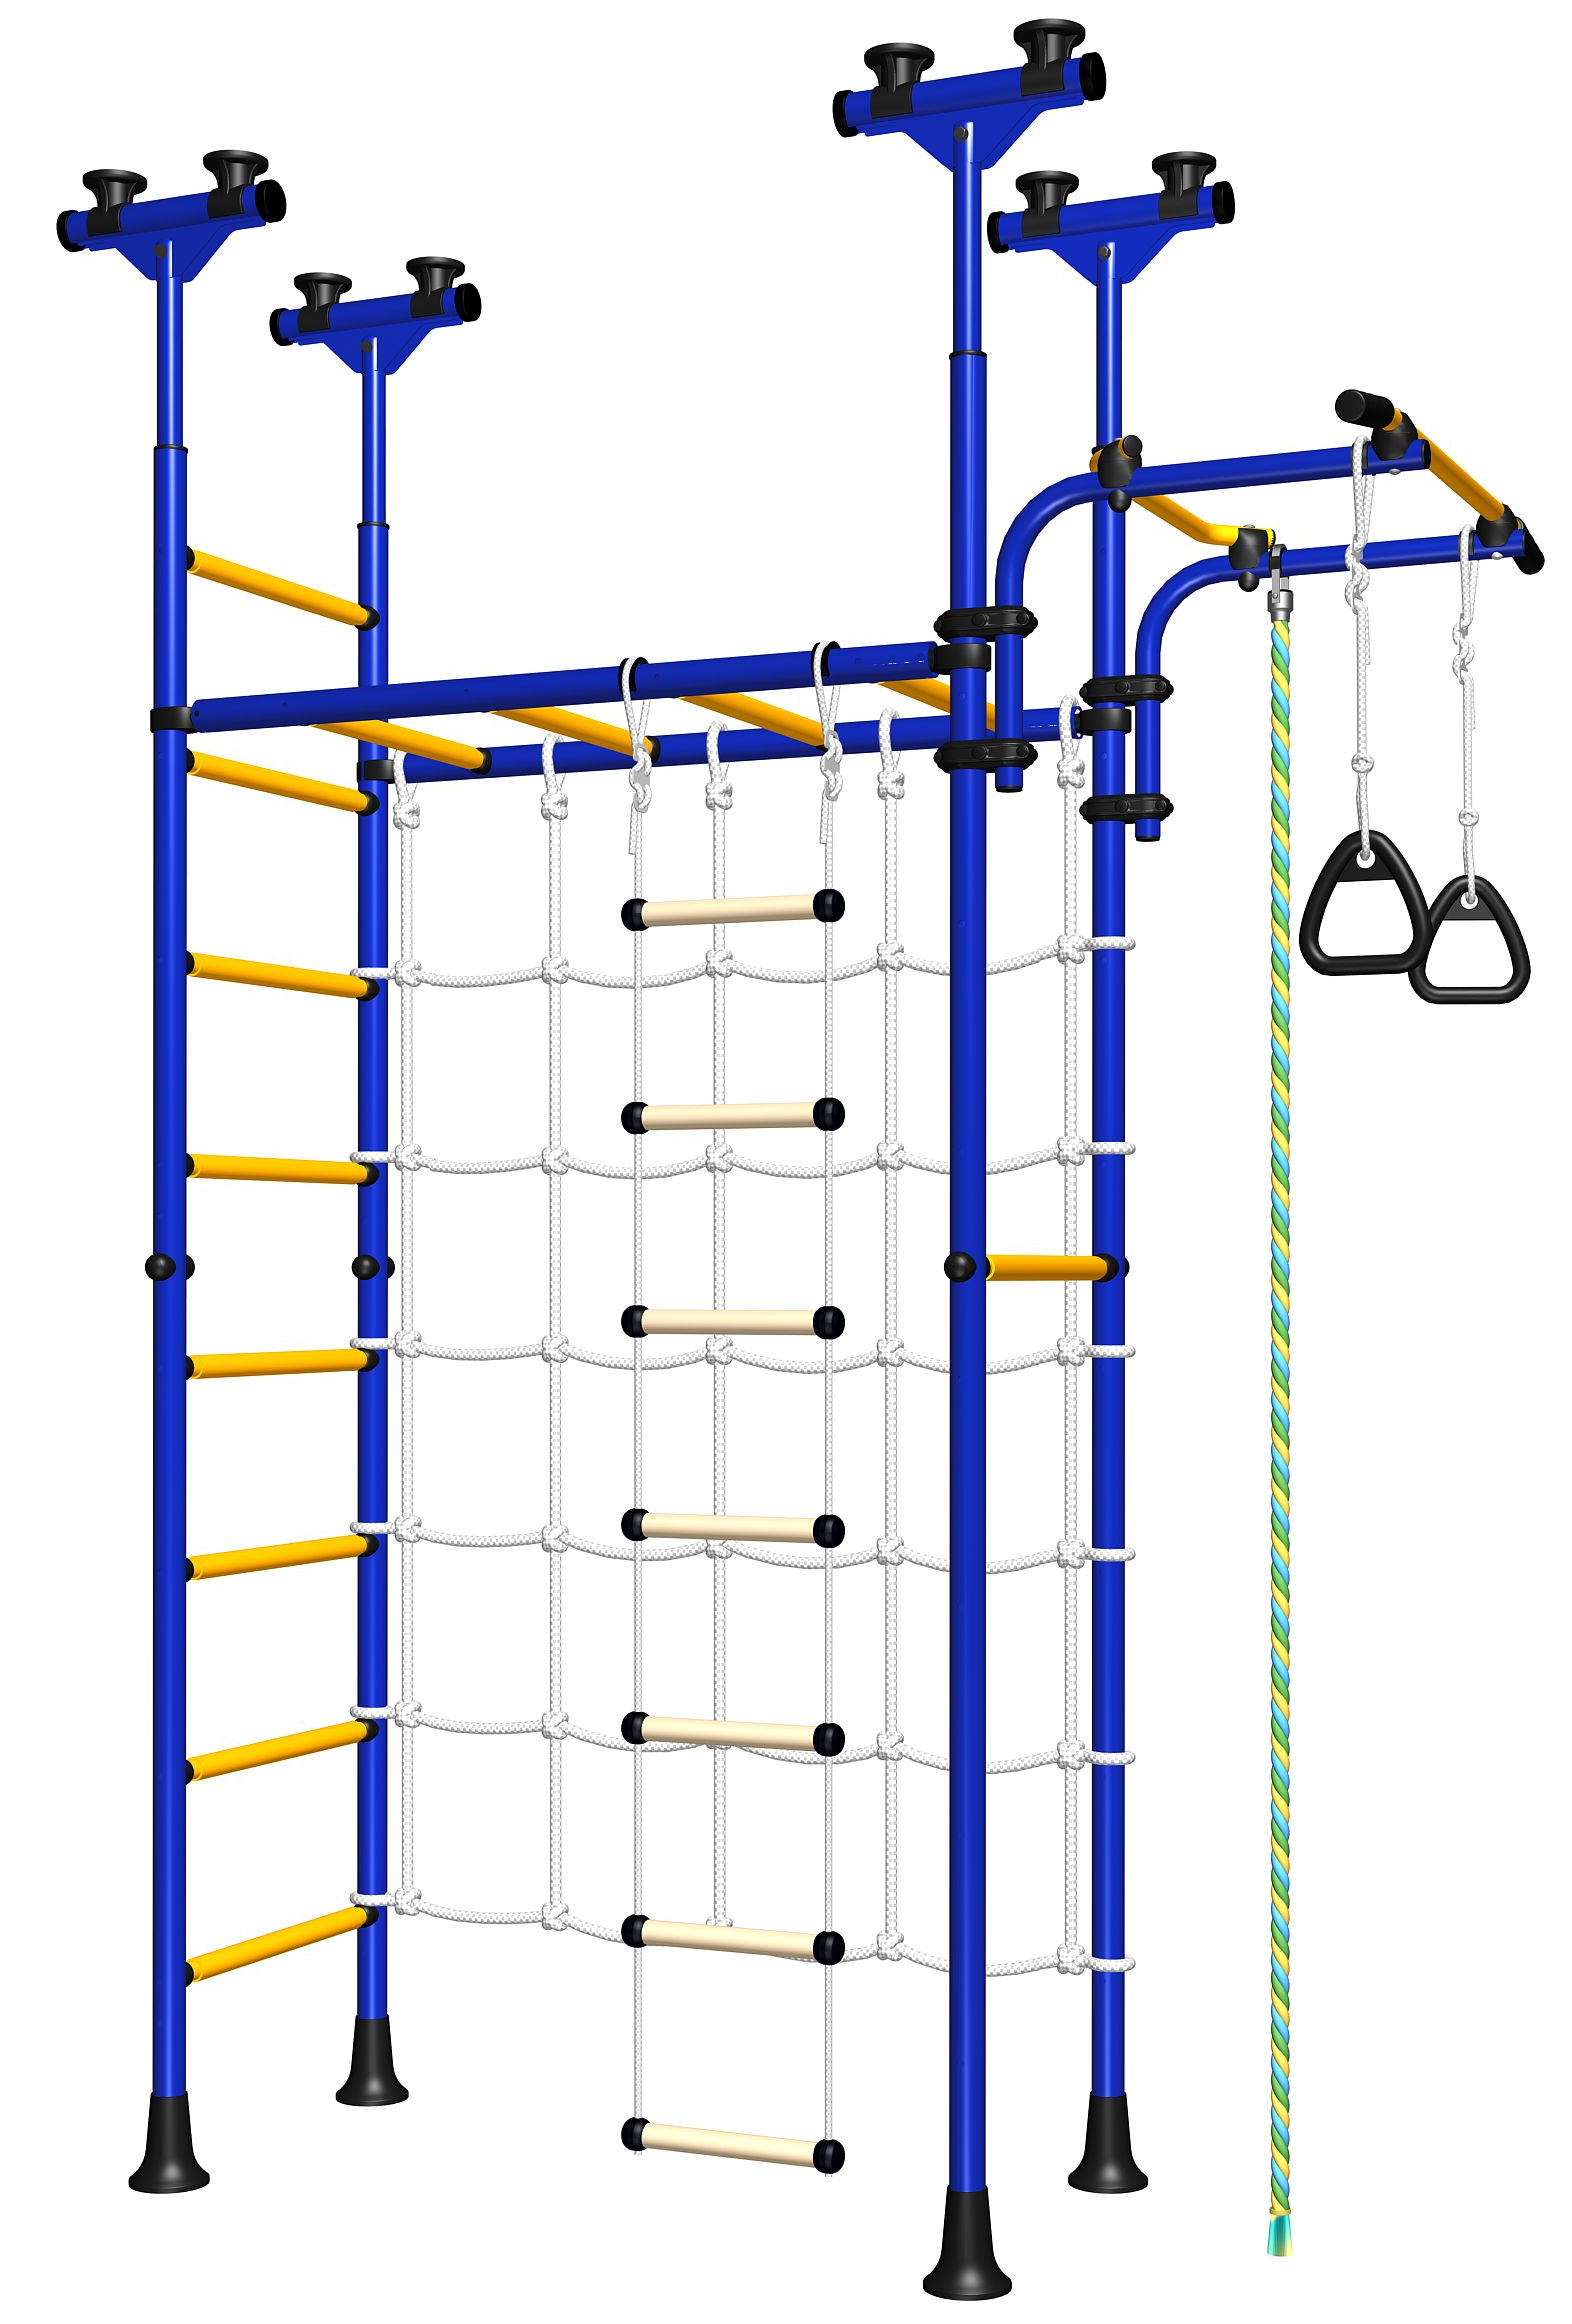 Spider Wall - a new generation of the Home Gym forKids with the Monkeybars and the Net in one set